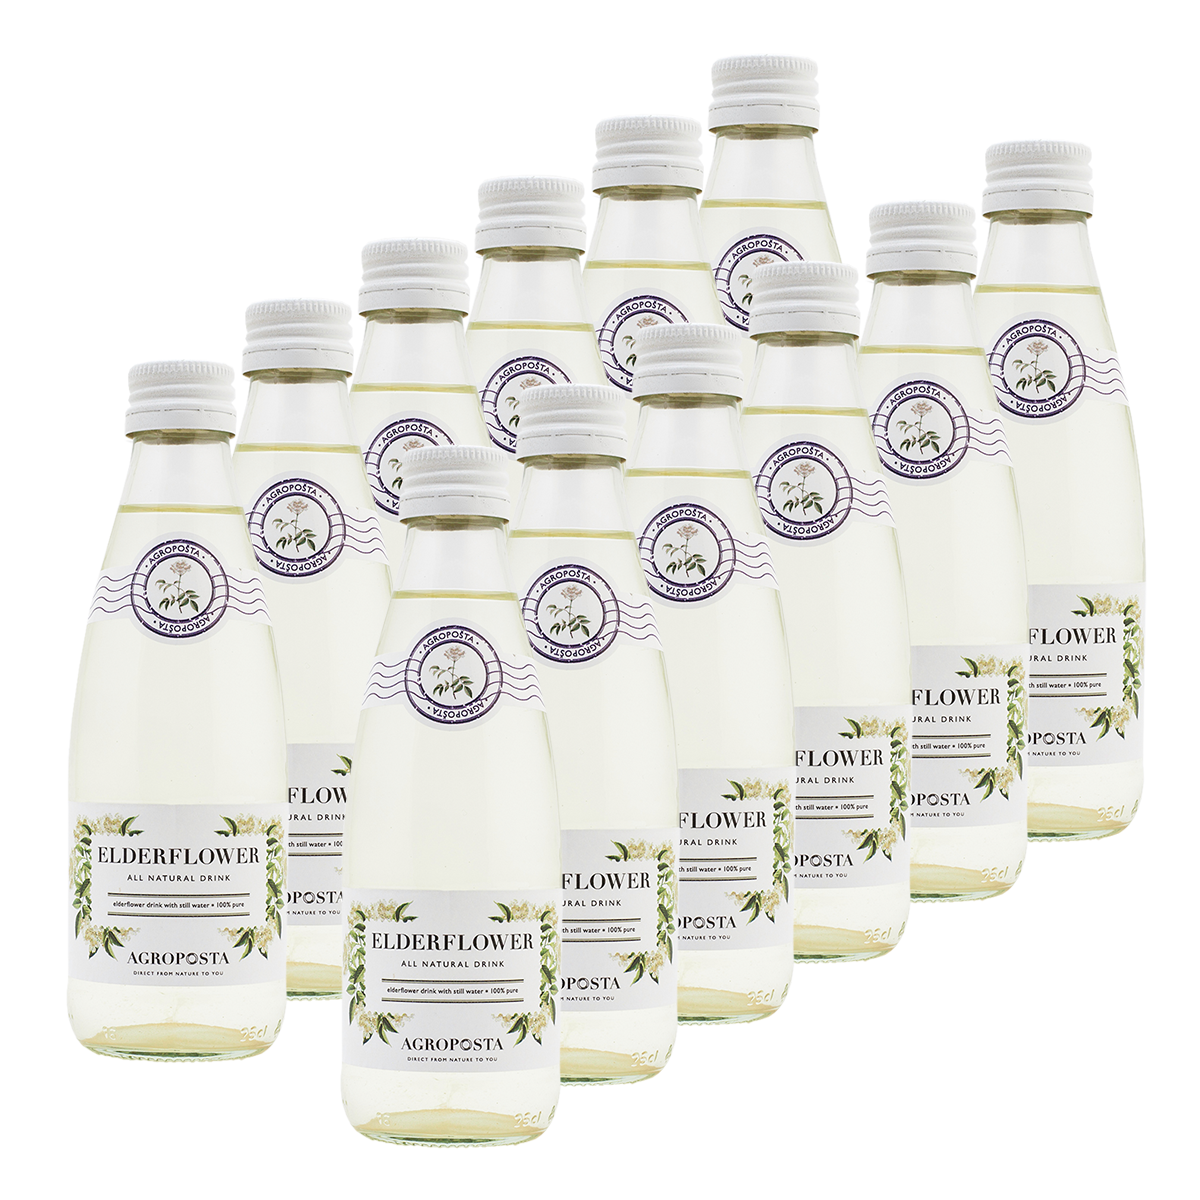 Image of AgropoÅ!ta: 100% Pure, All-Natural, Guilt-Free Drinks, Flavored Water, Elderflower